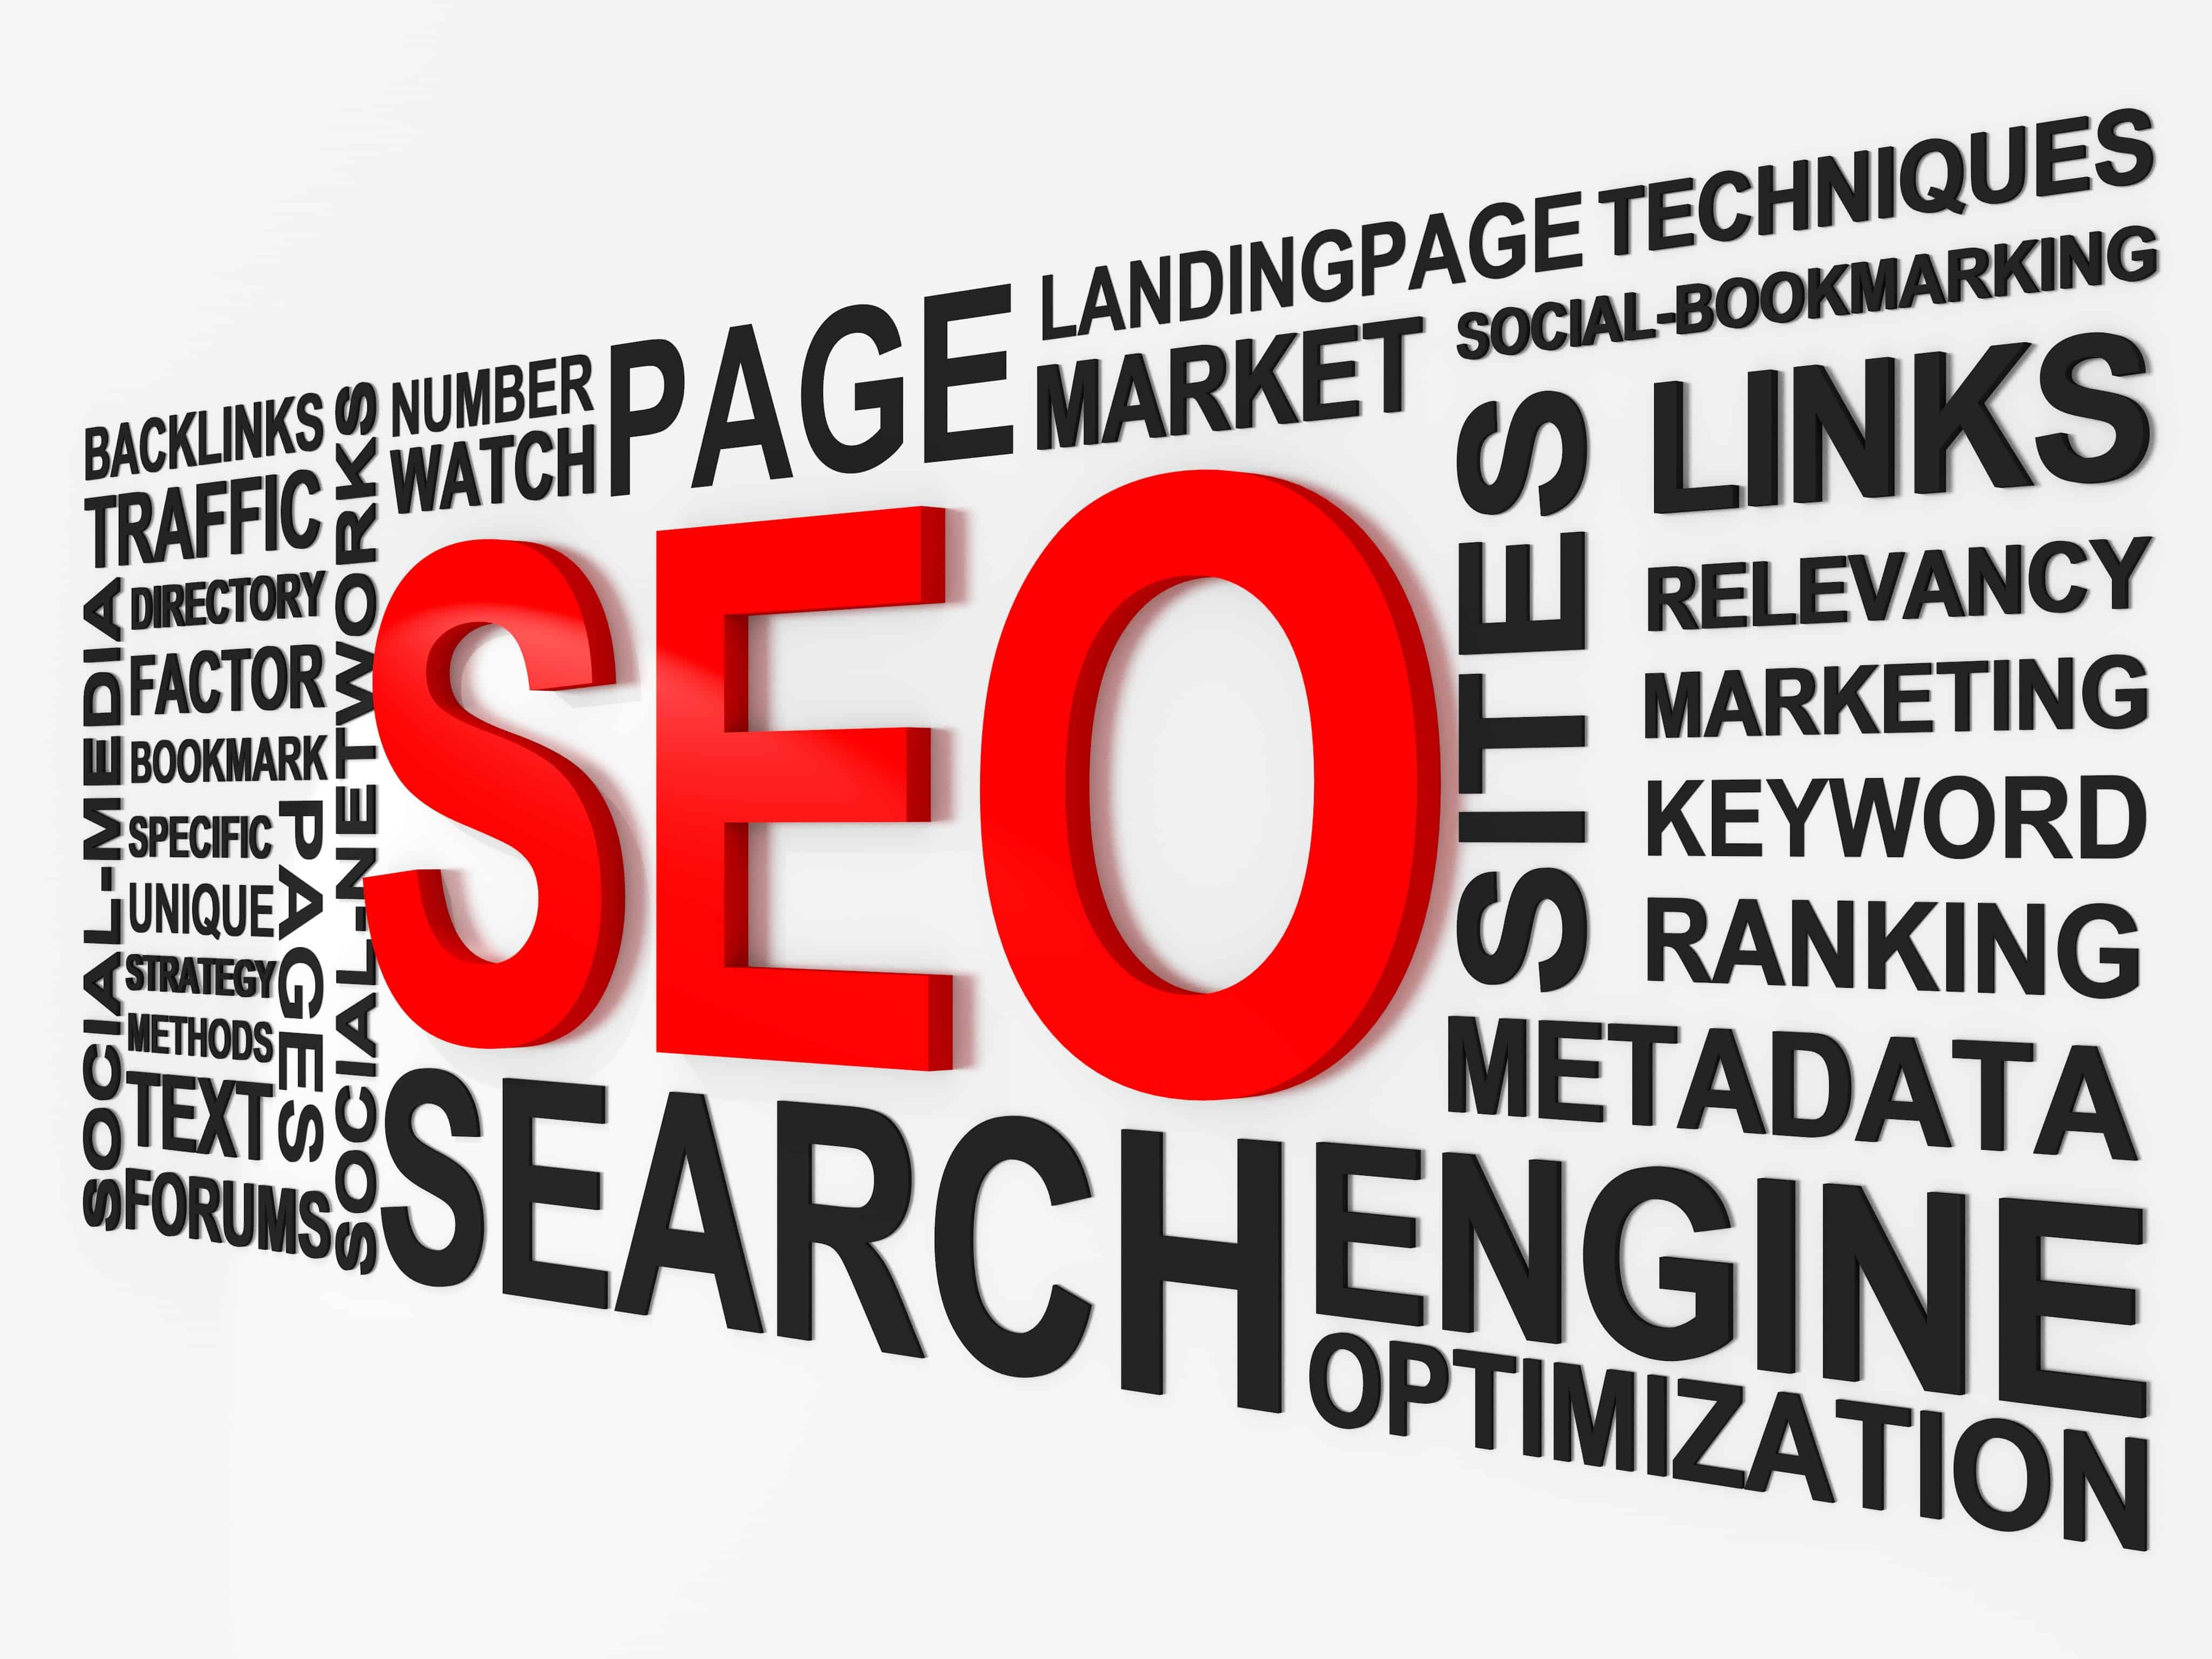 SEO Services in Conneticut